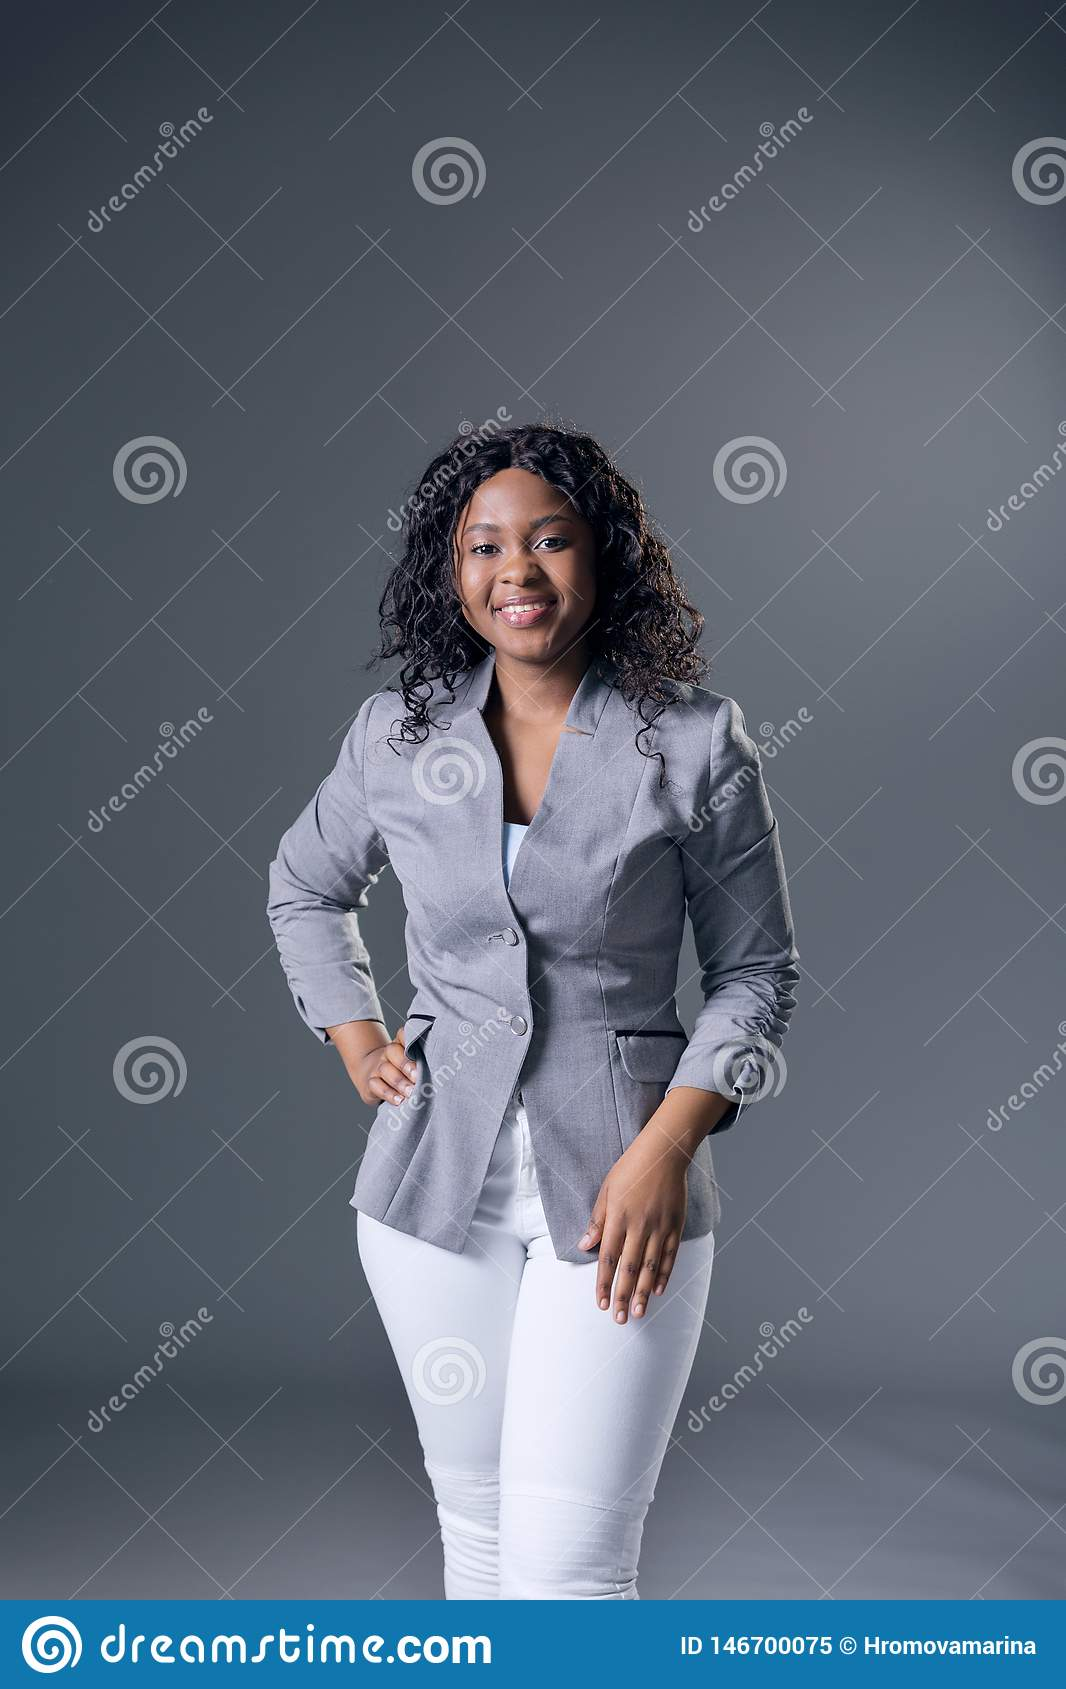 Dark-skinned beautiful woman a gray jacket with dark curly hair posing on a gray background.